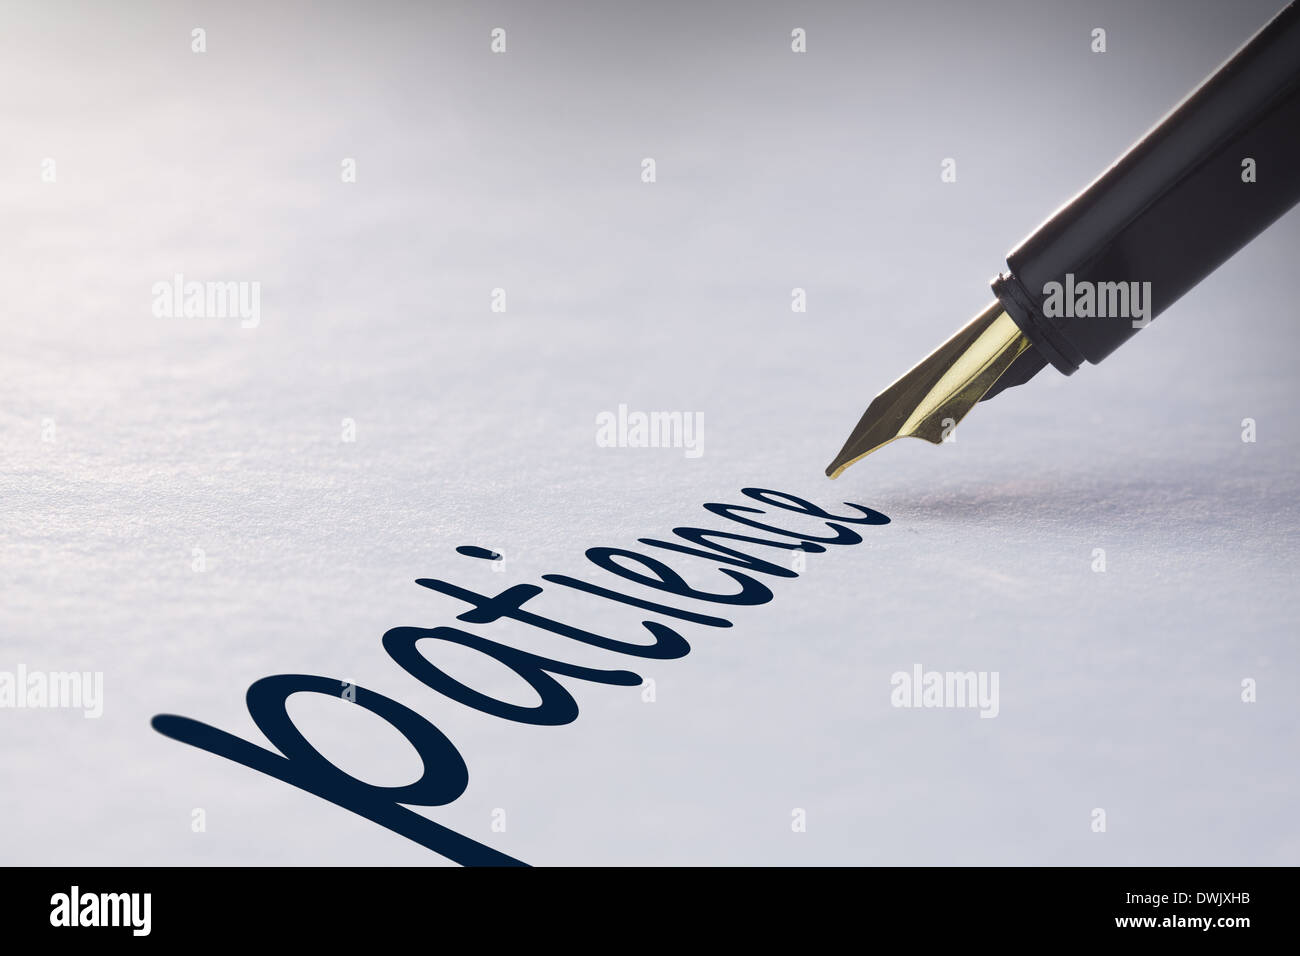 Fountain pen writing Patience - Stock Image